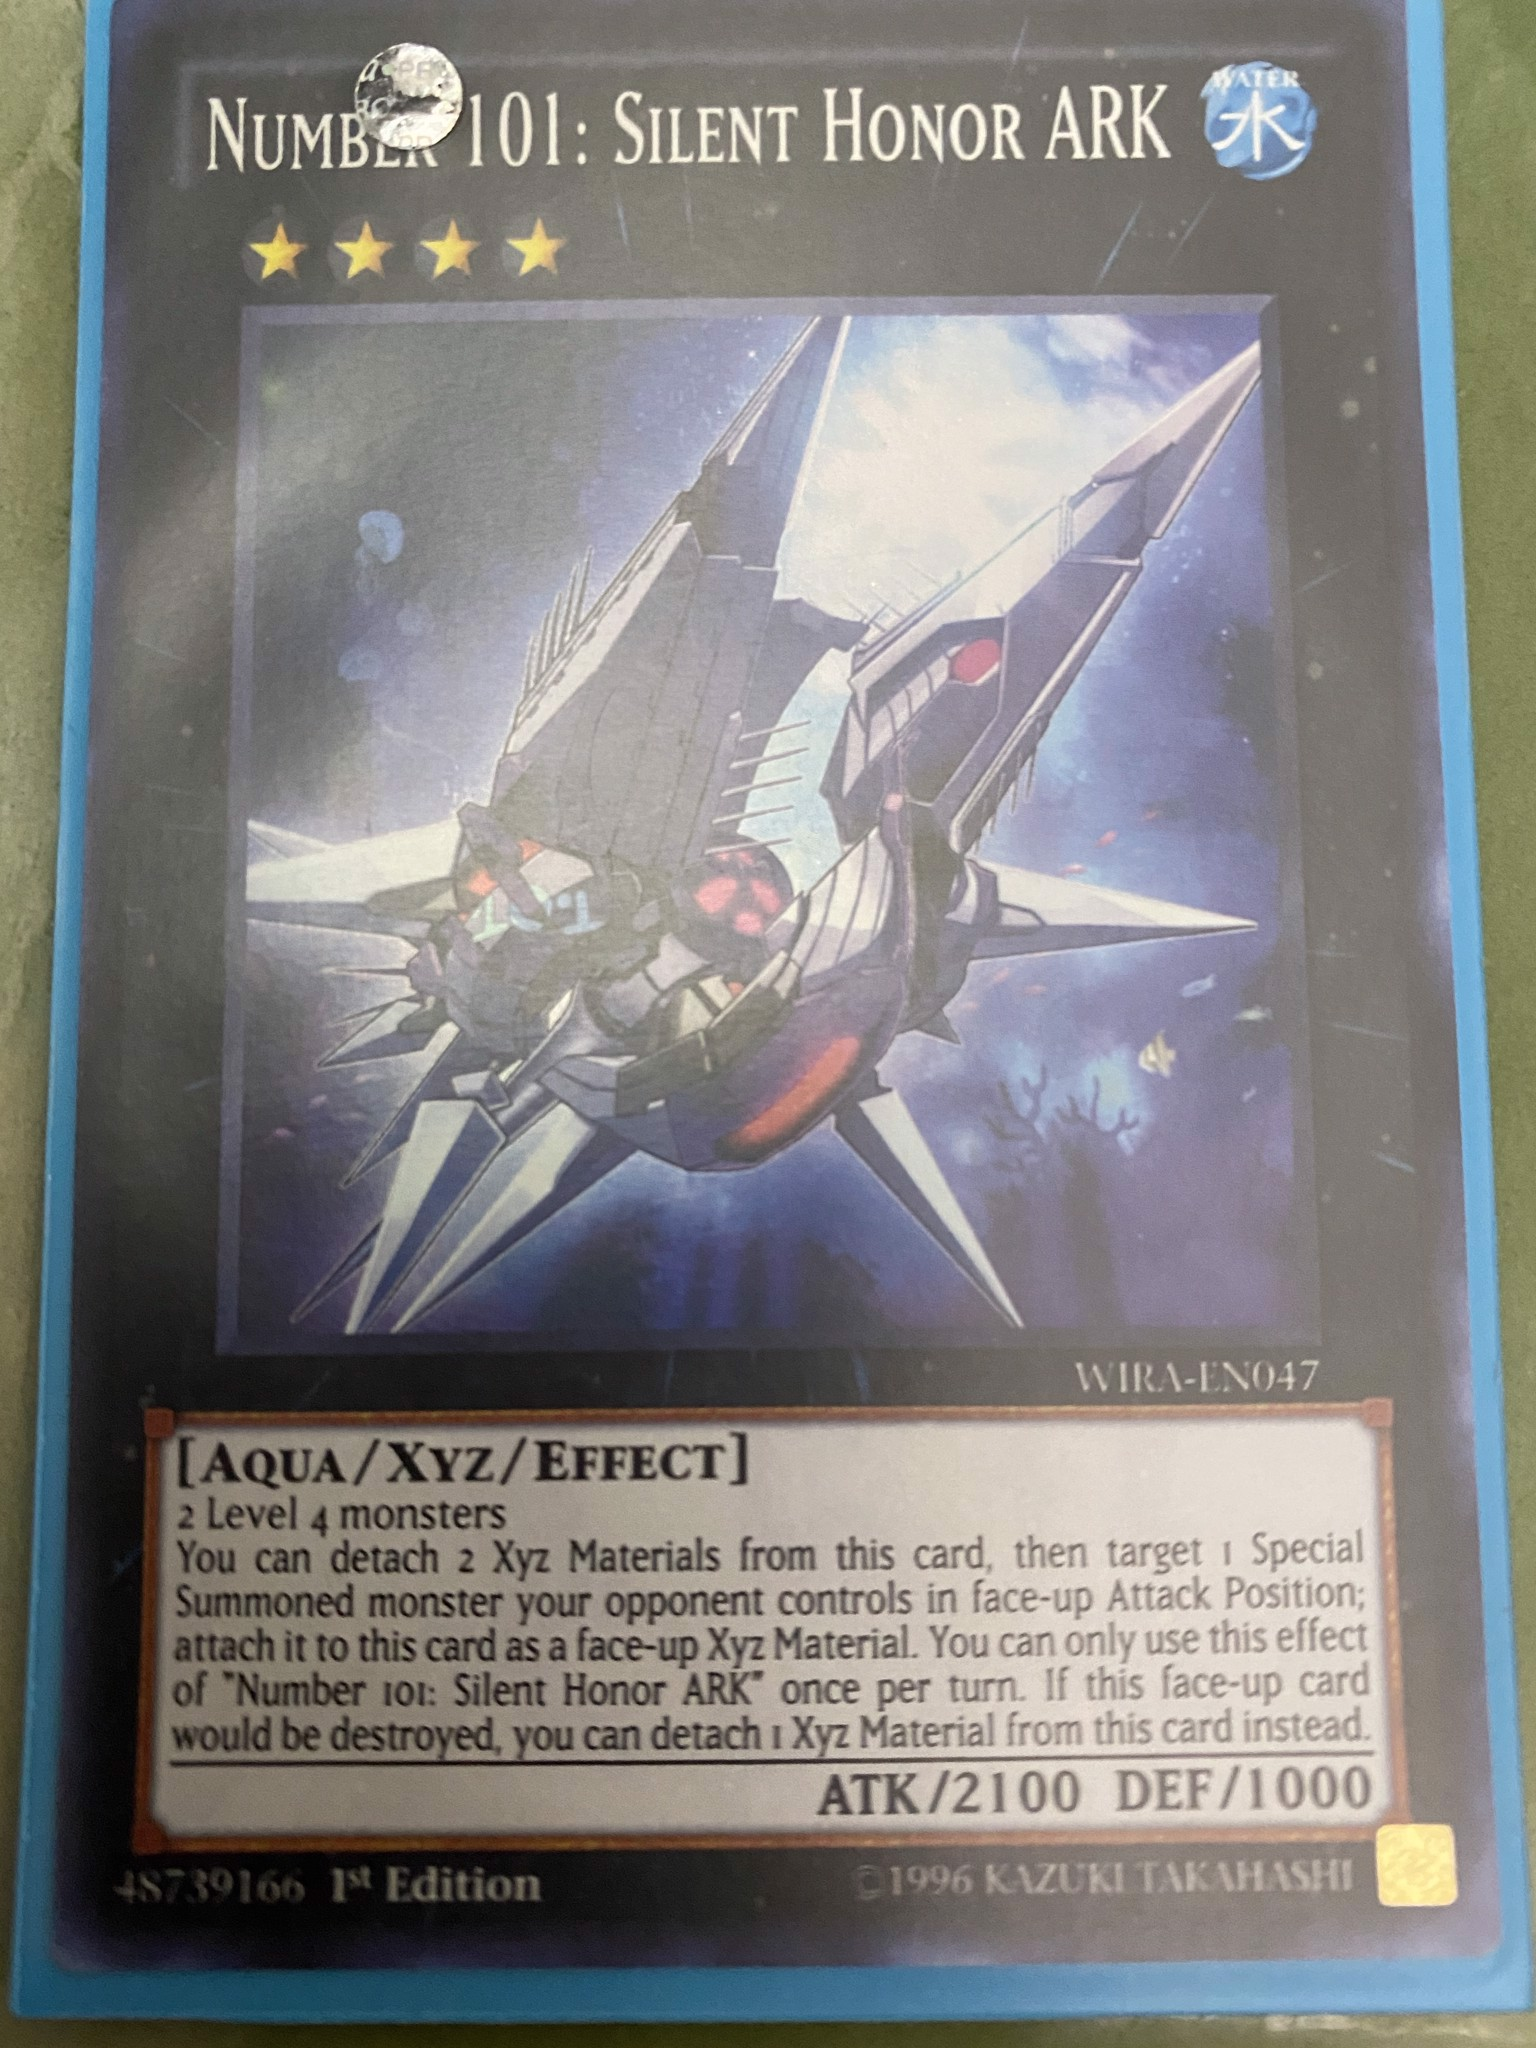 [ US ] Number 101: Silent Honor ARK - WIRA-EN047 - Super Rare 1st Edition